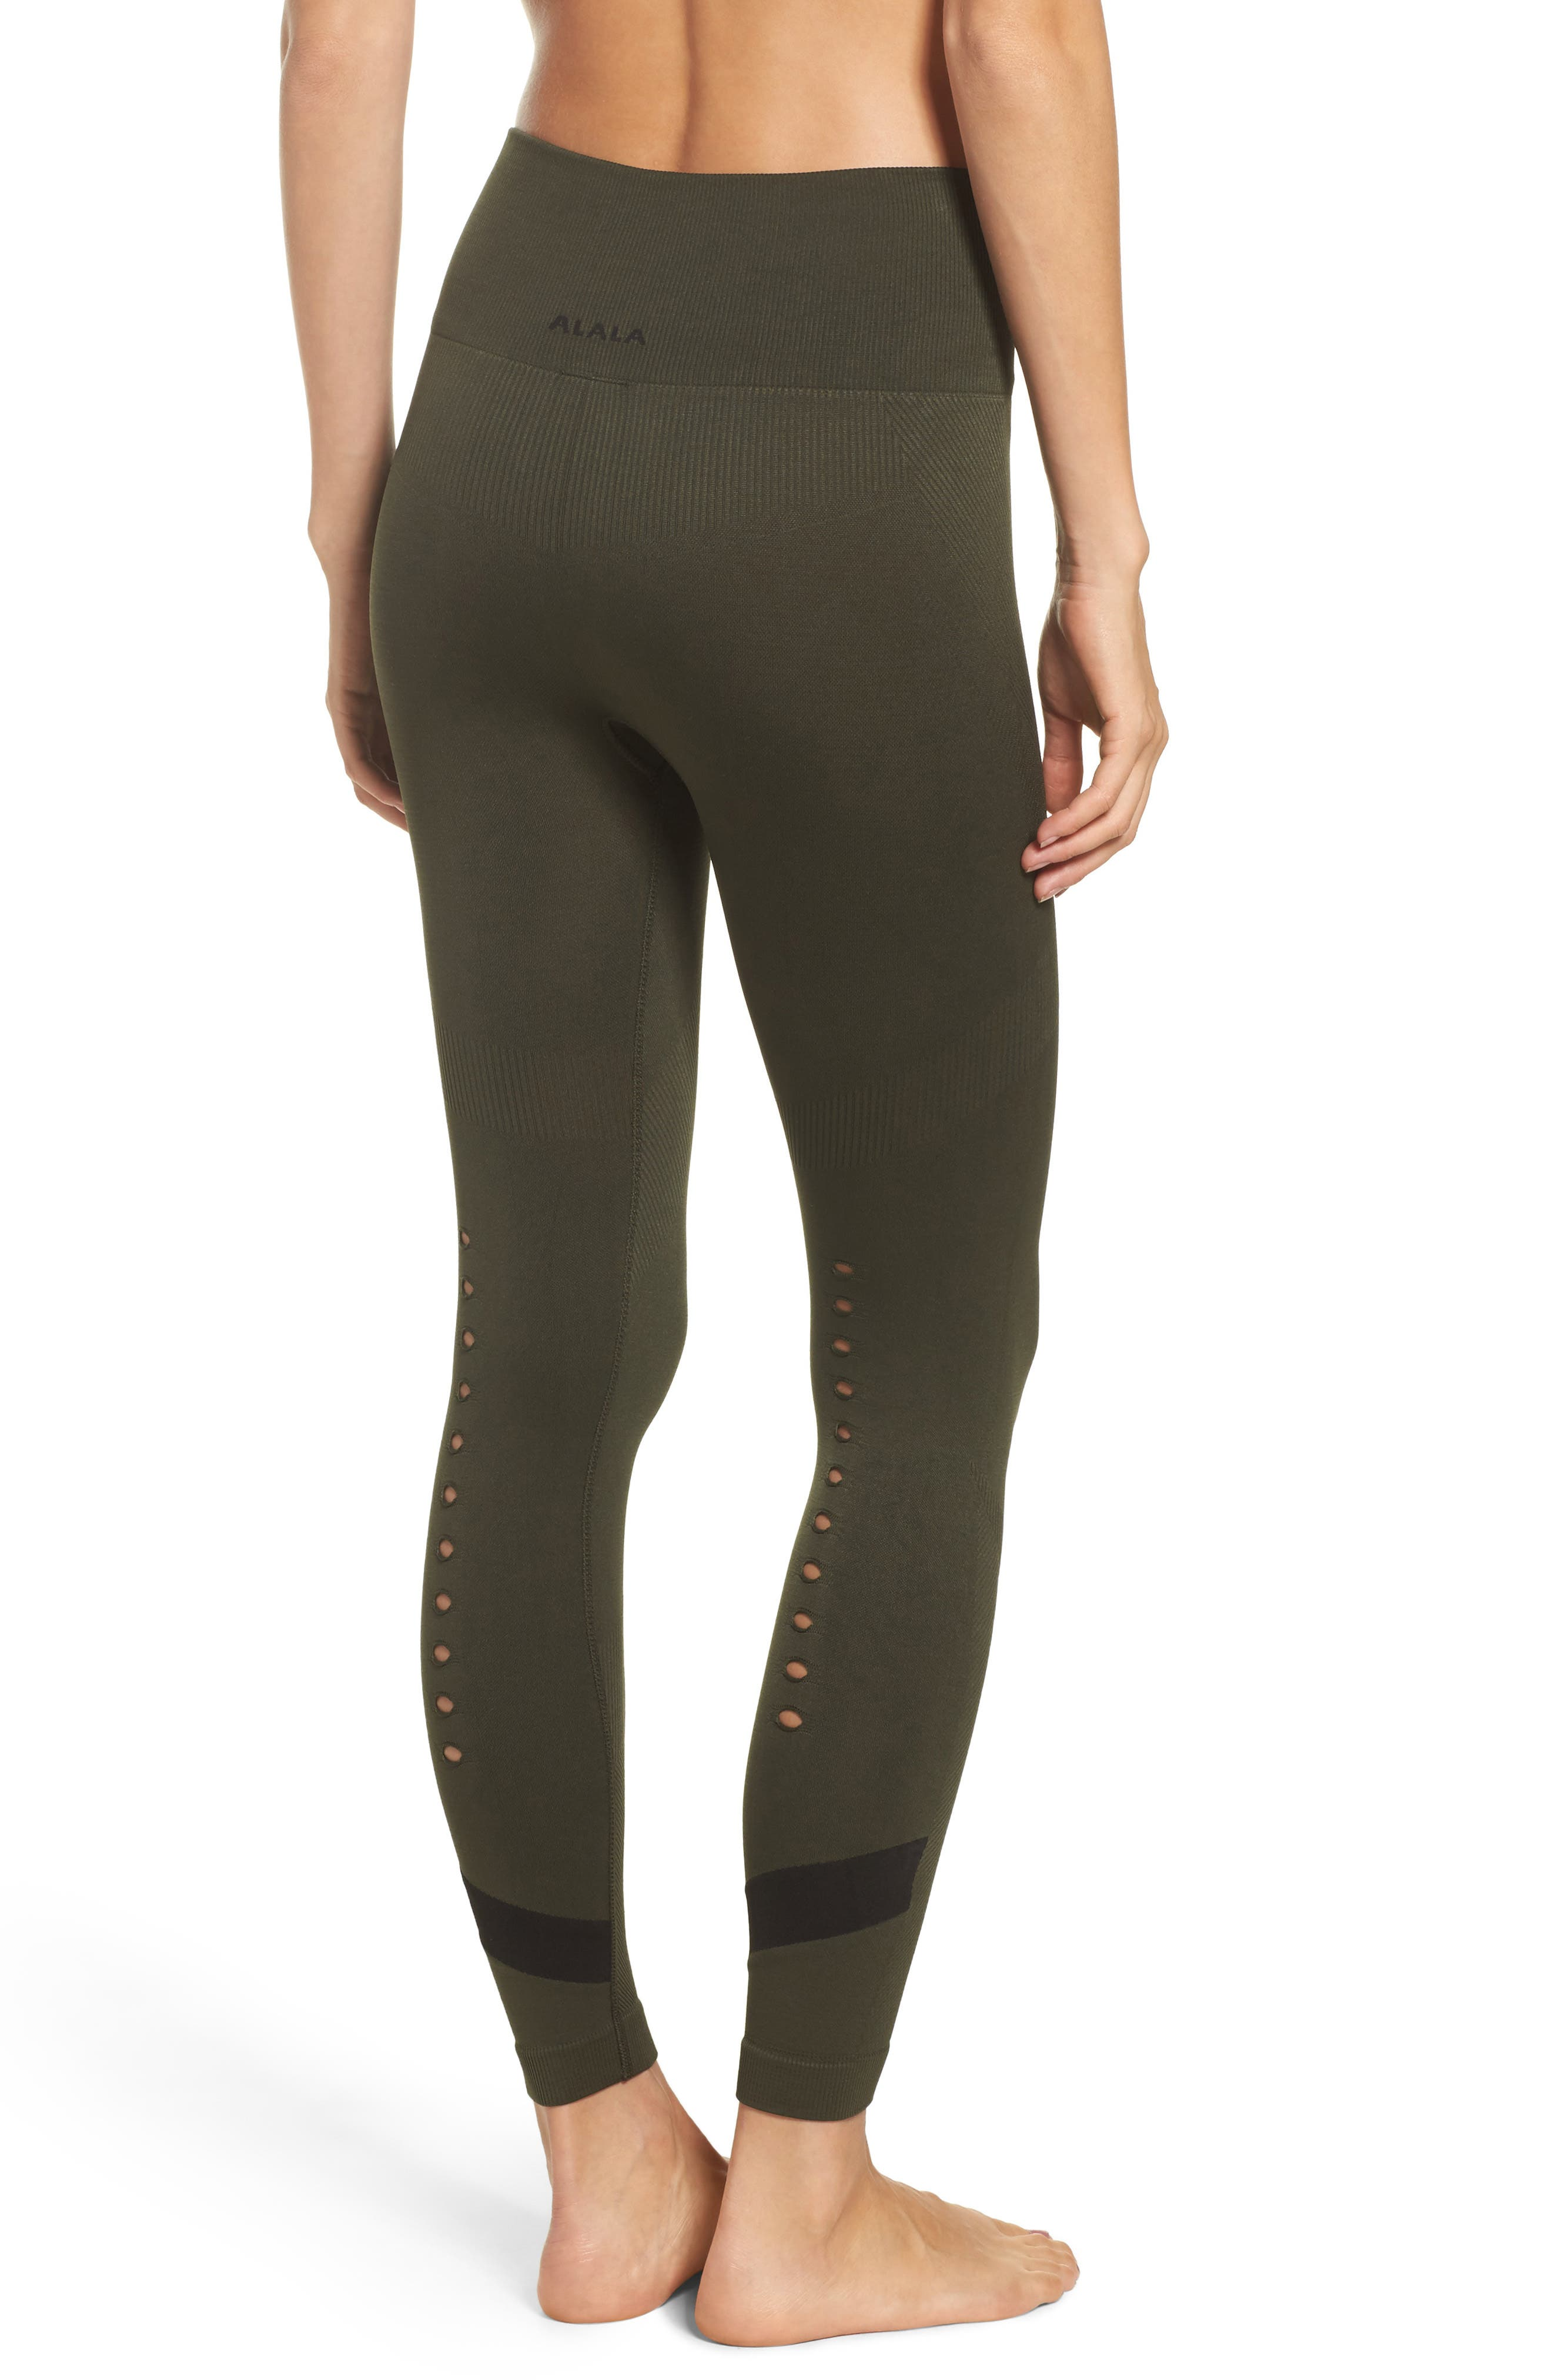 Niche Tights,                             Alternate thumbnail 2, color,                             Army